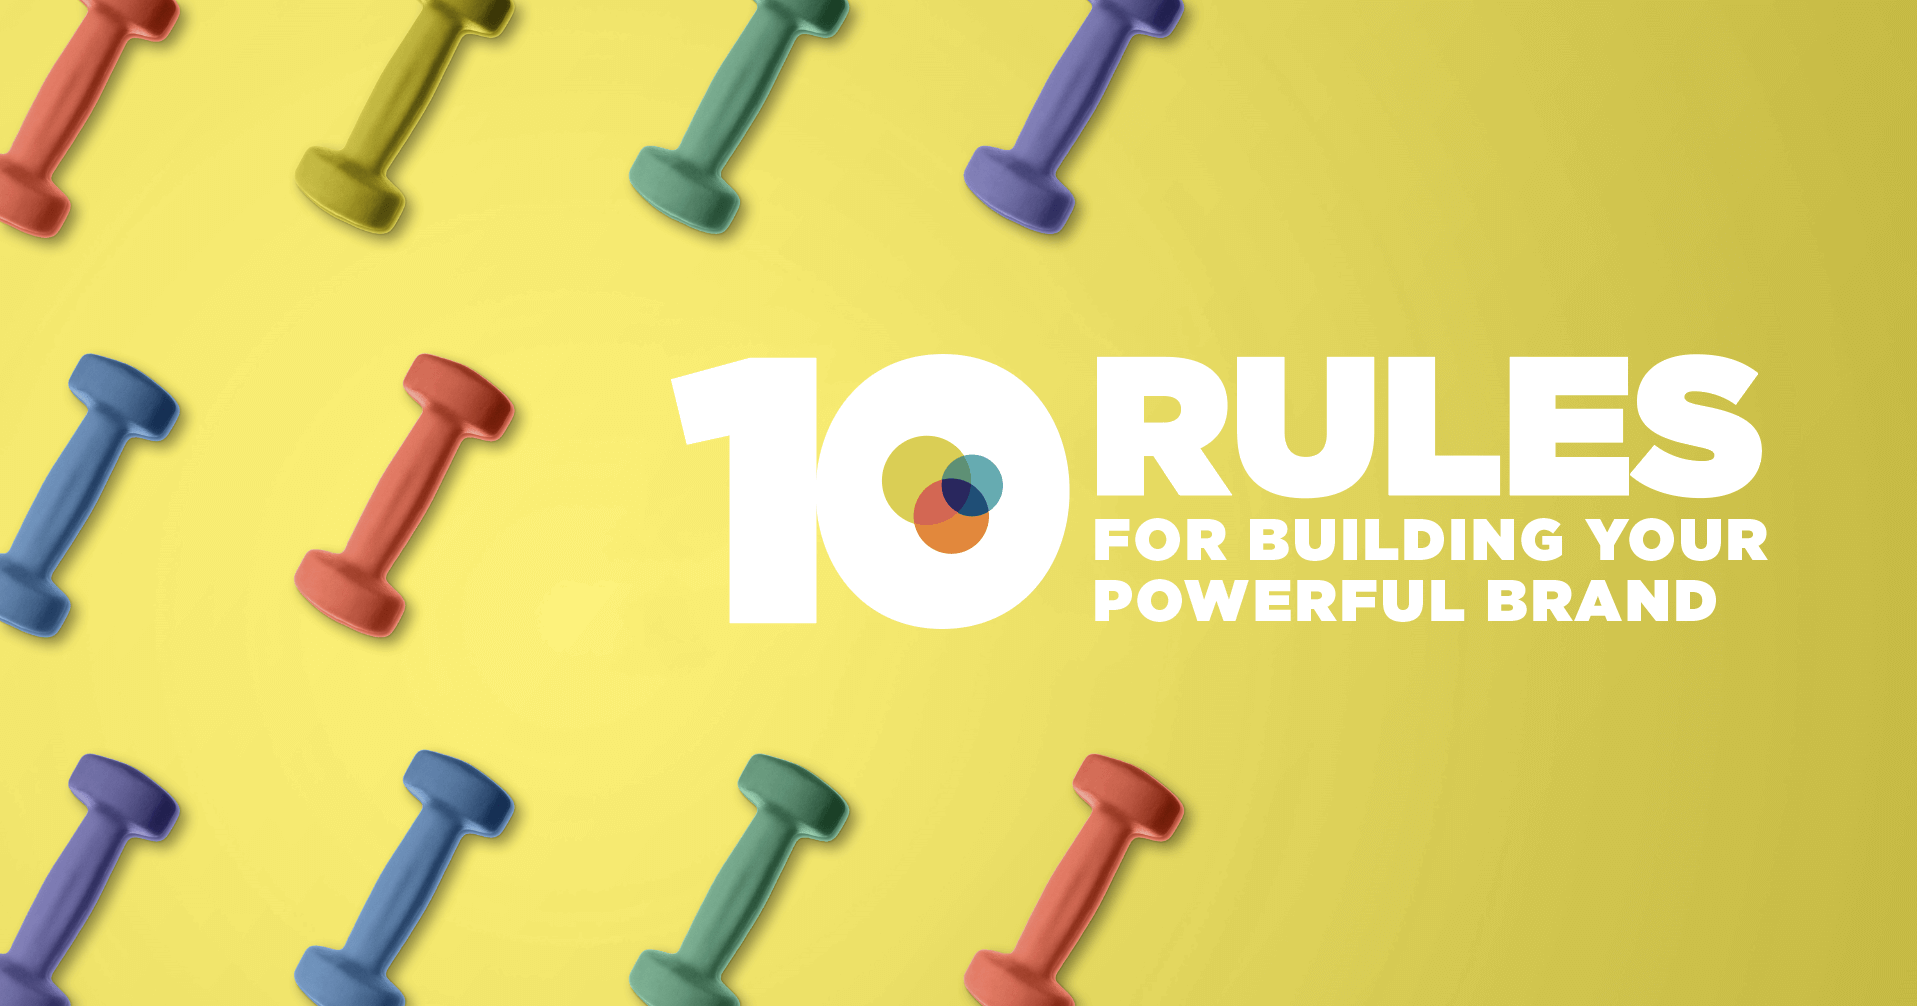 10 Rules for Building Your Powerful Brand | Header Image